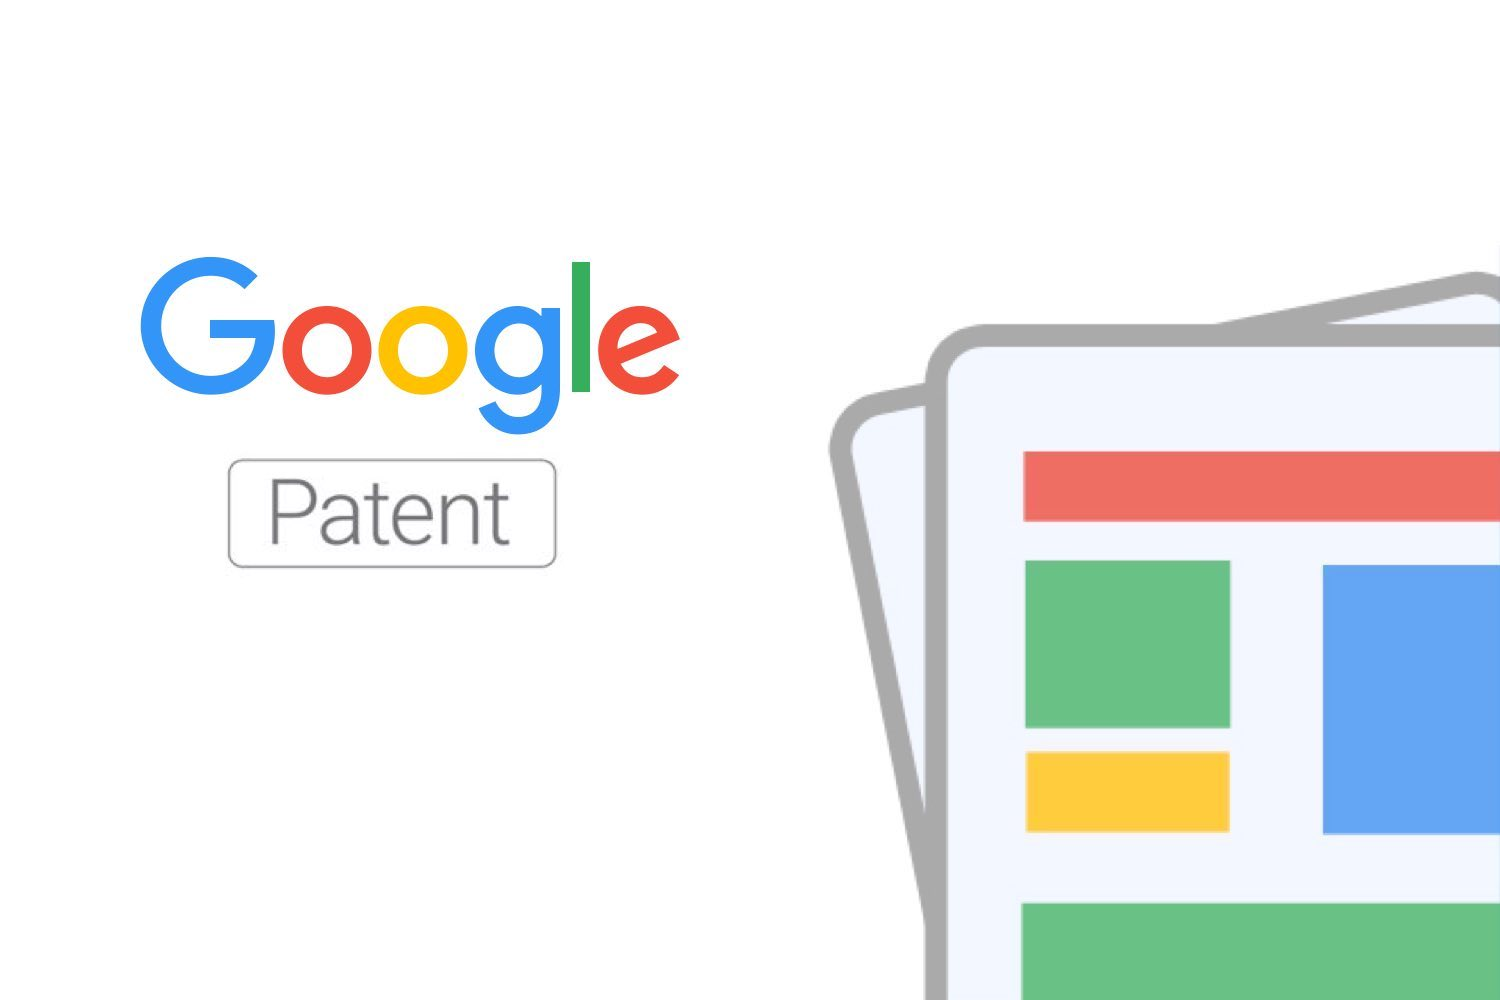 google patents, google patents español